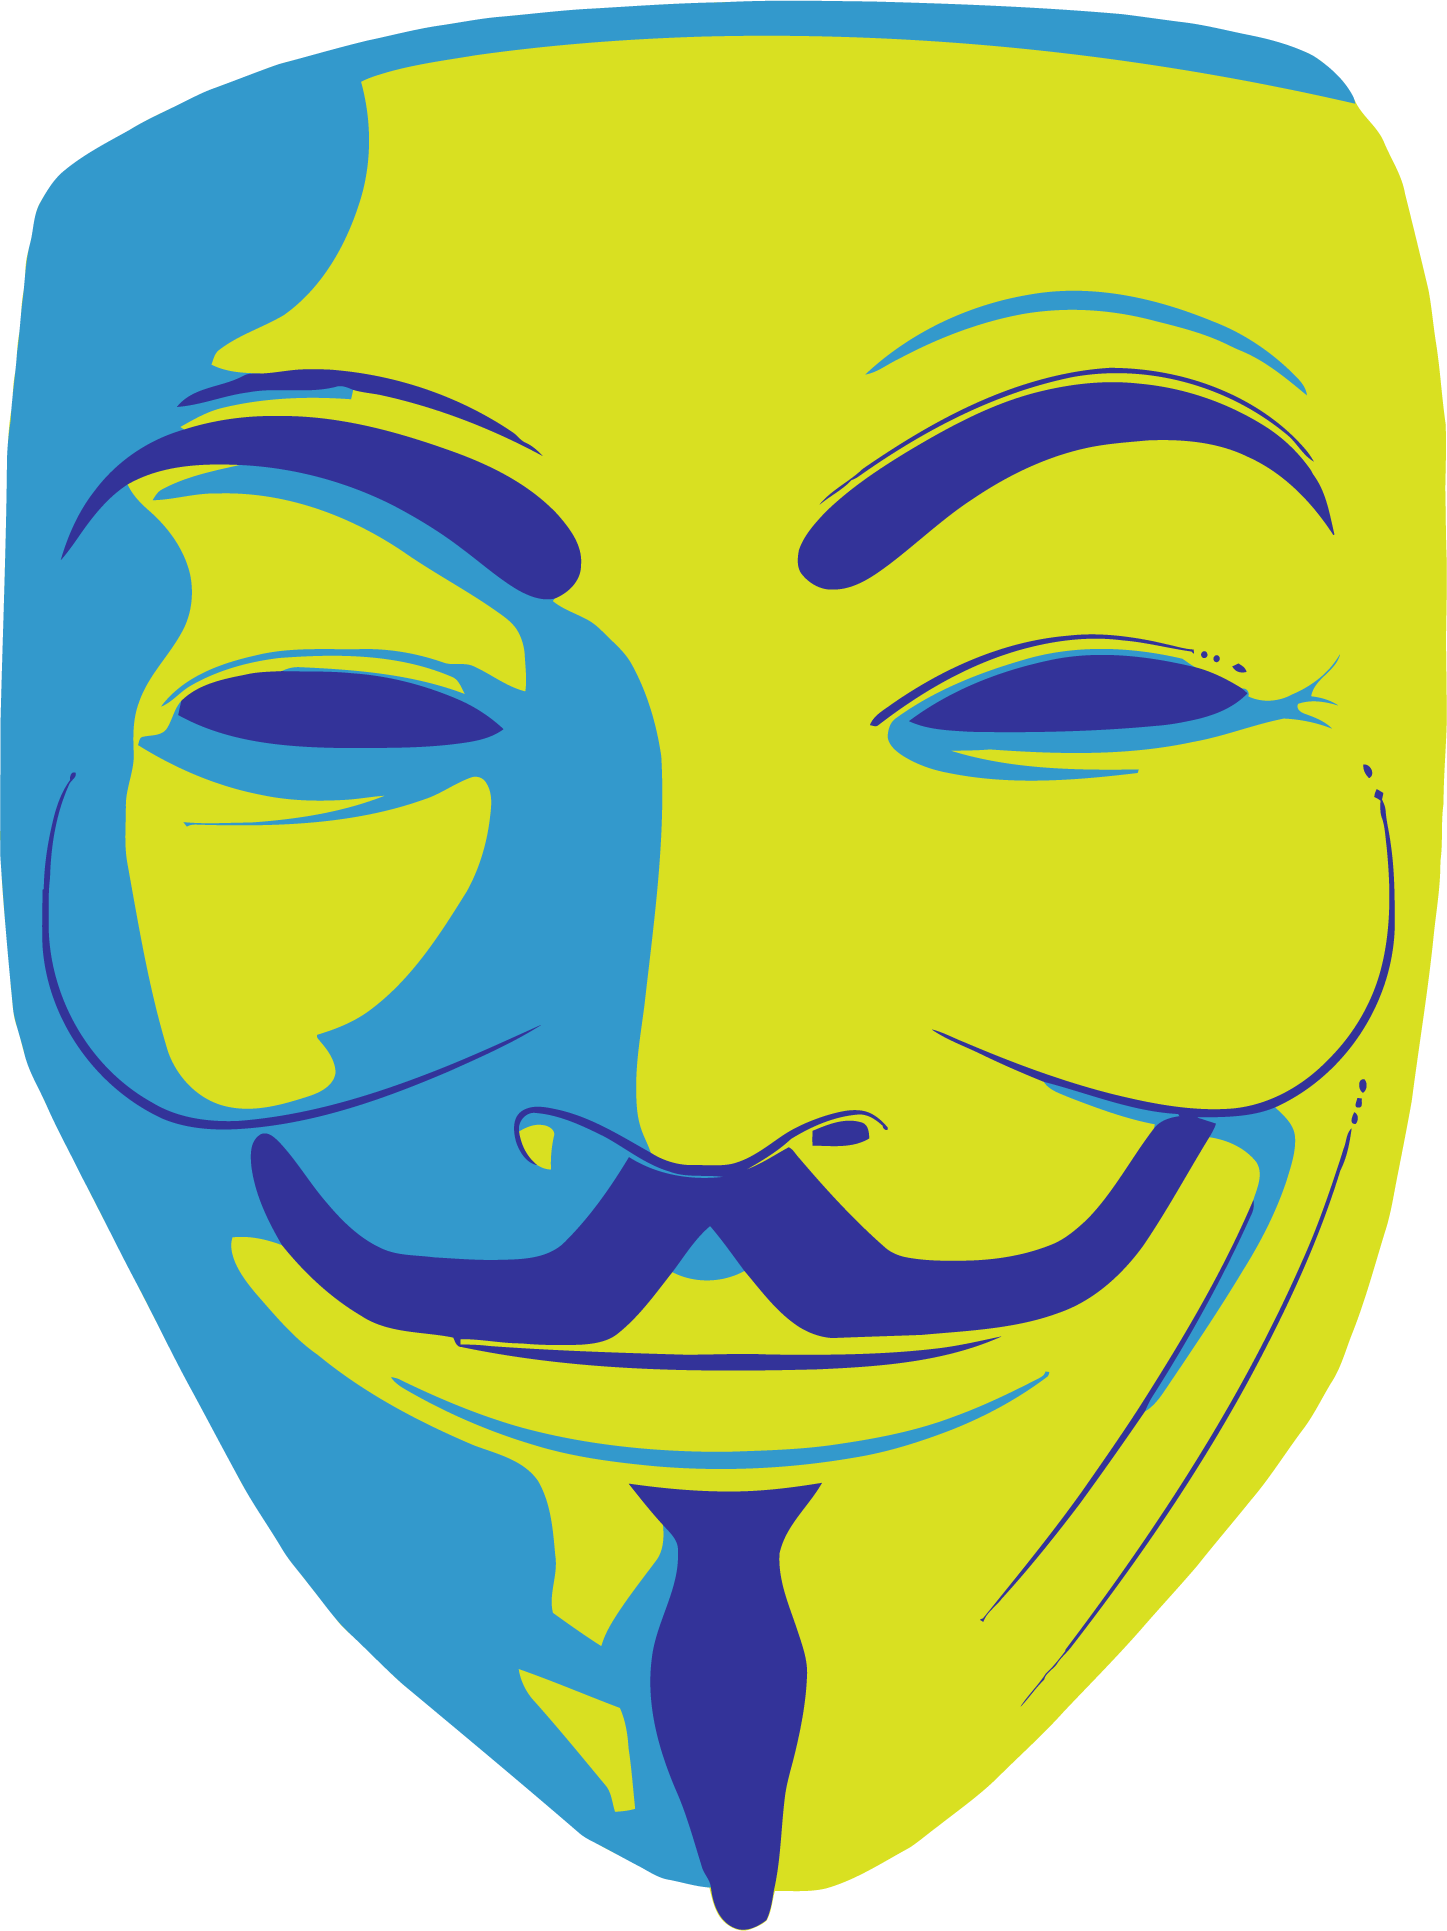 Anonymous mascara clipart image black and white library HD Anonymous Mask Clipart Png Image - Vendetta Mask Png , Free ... image black and white library